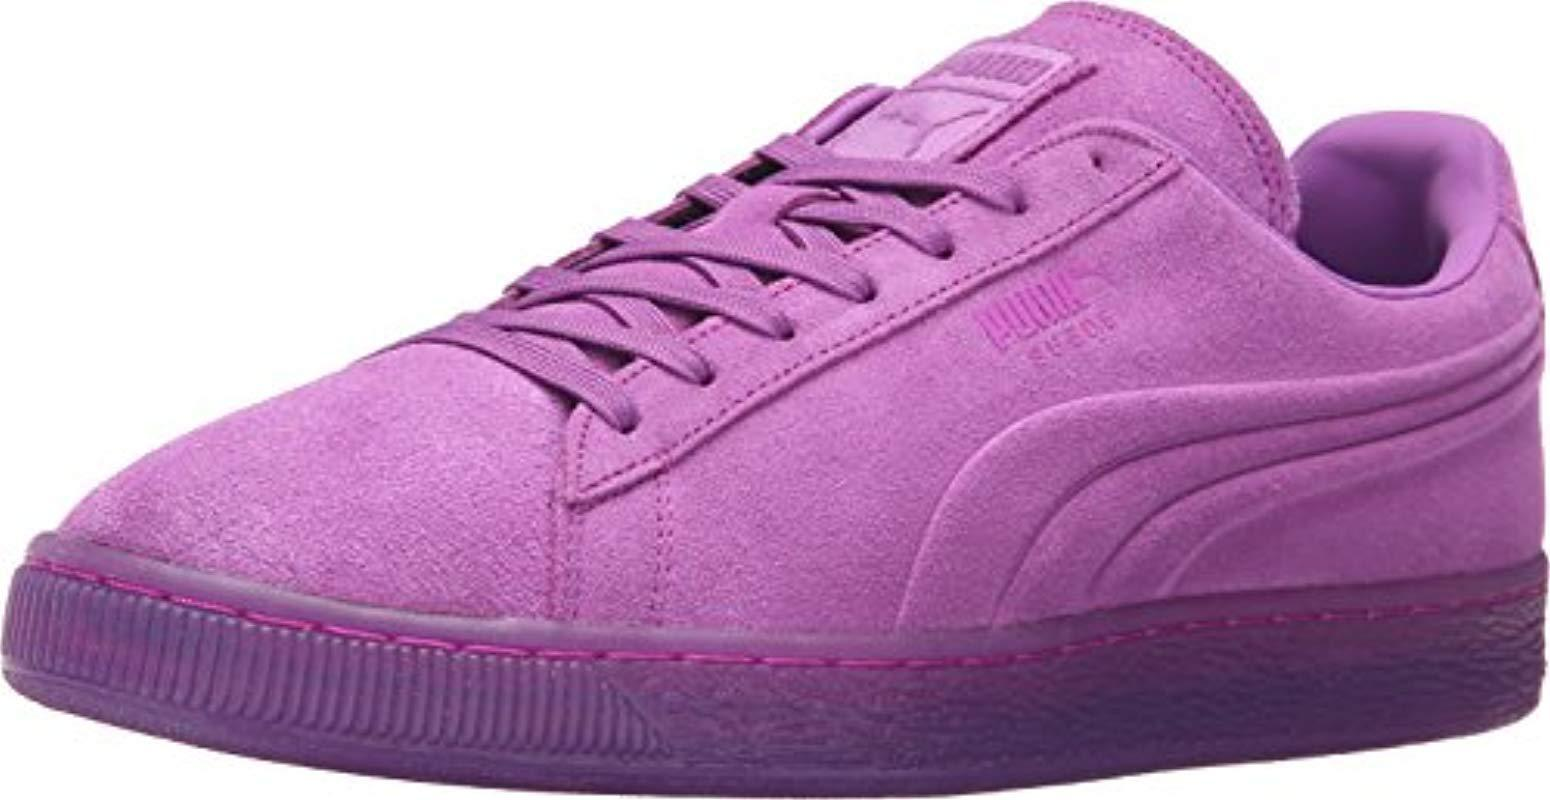 f55d3e5d100 Lyst - Puma Suede Emboss Iced Fluo Fashion Sneaker in Purple for Men ...